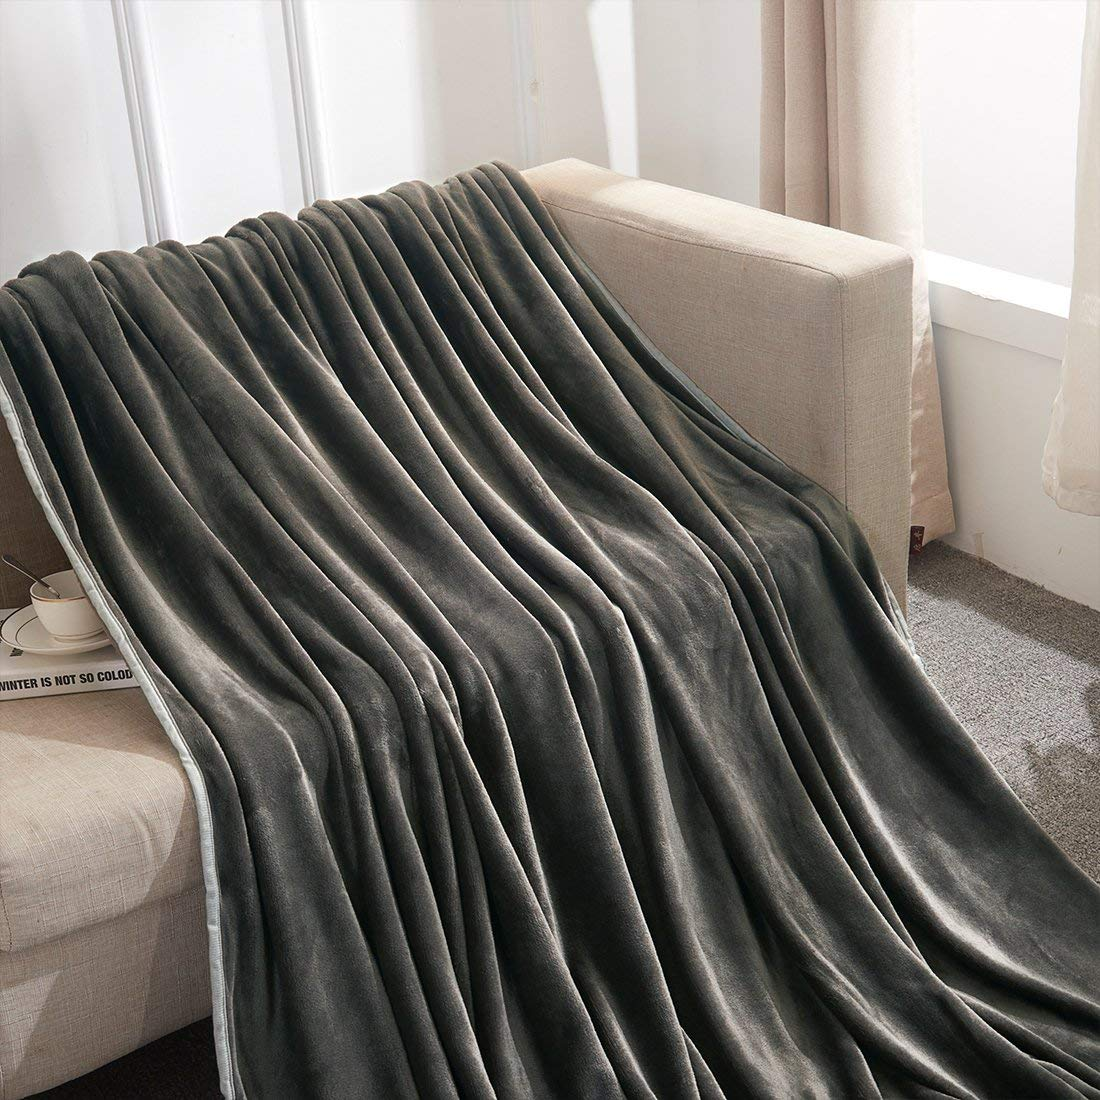 King Size Bed Throws Cheap Large Bed Throws Find Large Bed Throws Deals On Line At